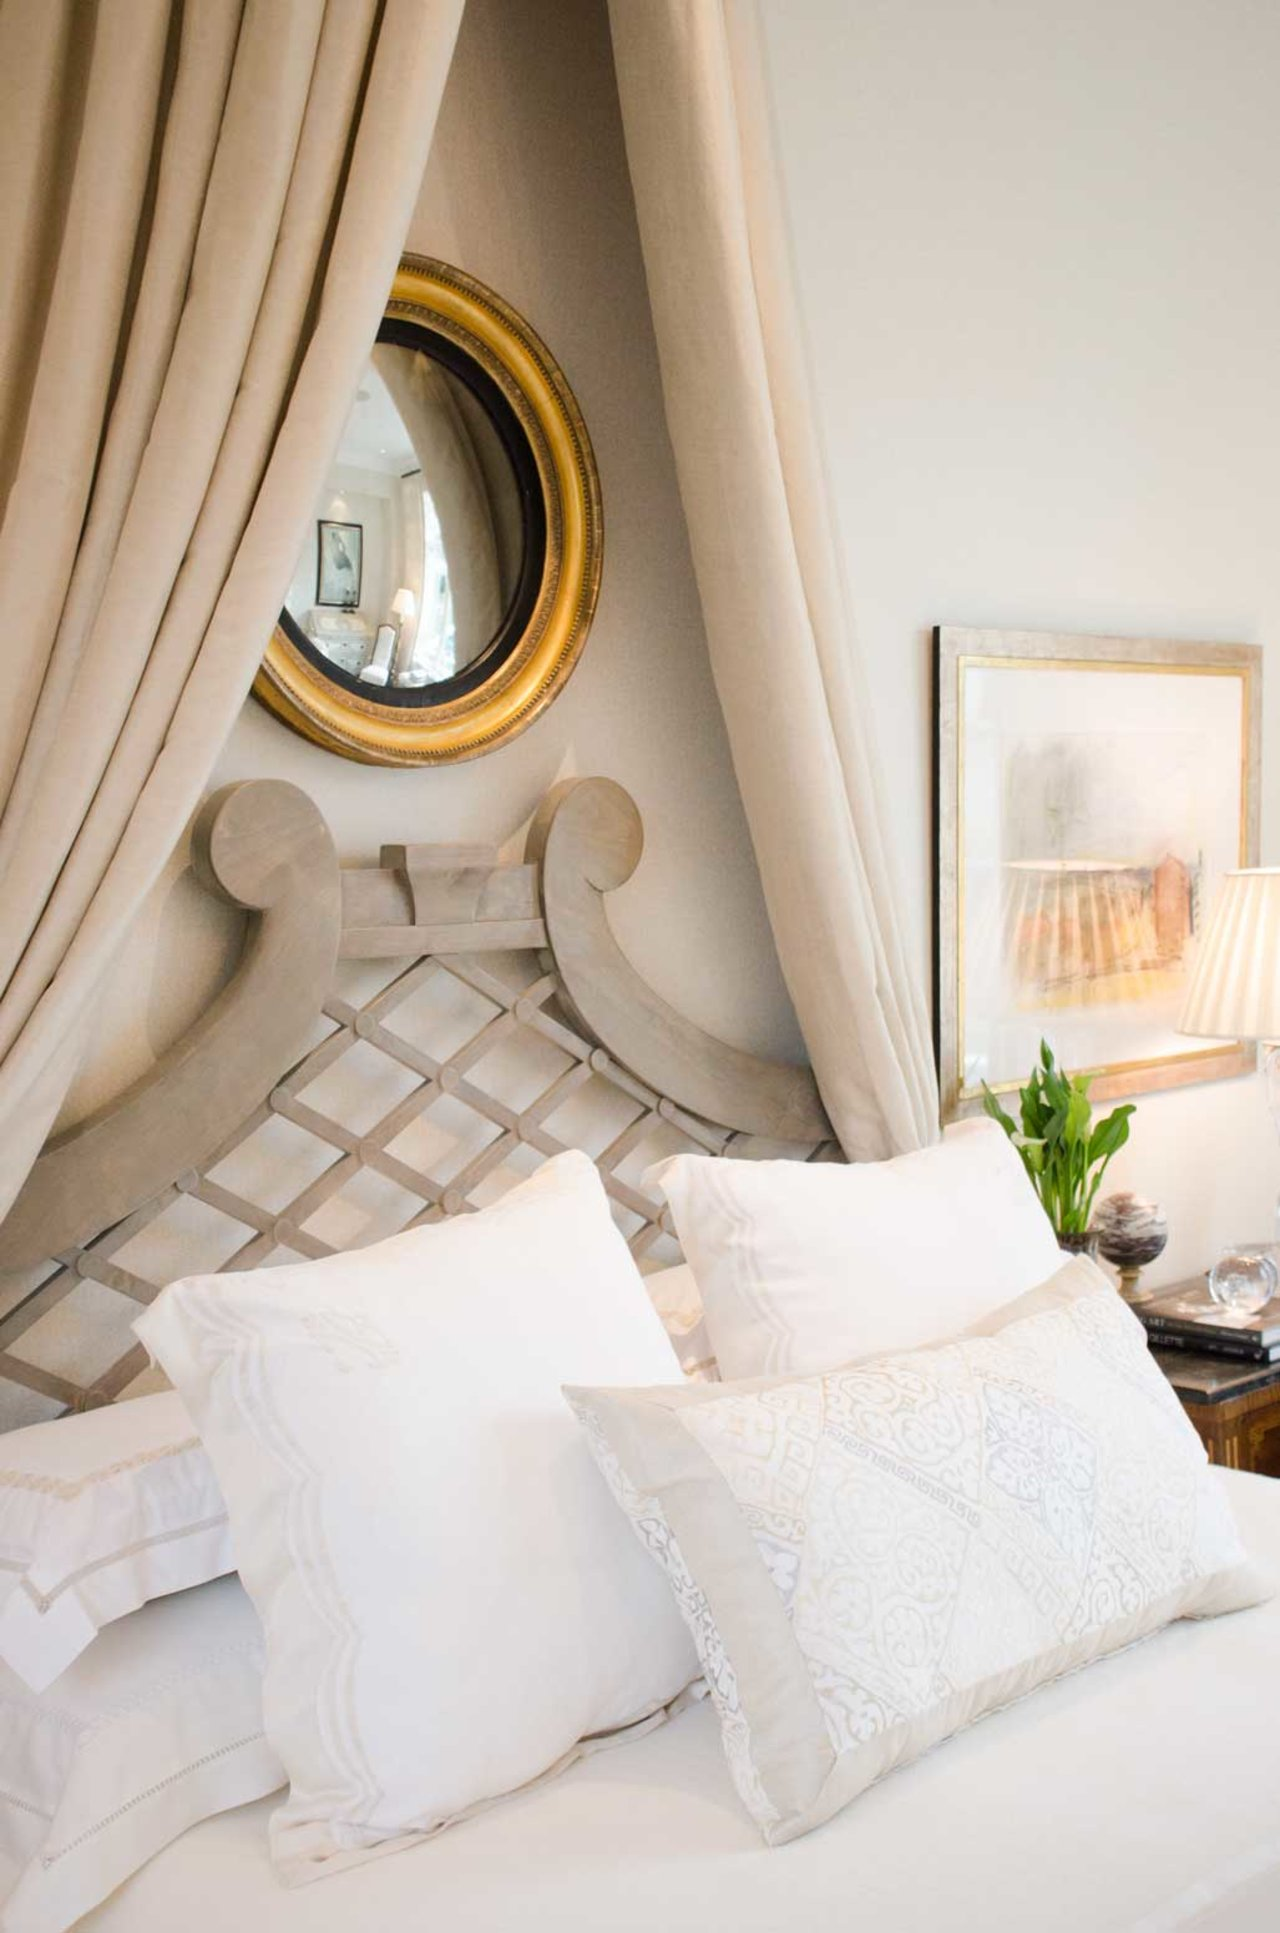 Elegant bed with canopy and round mirror - Gorgeous Christmas decorations at elegant Home for Holidays showhouse in Atlanta - Hello Lovely Studio